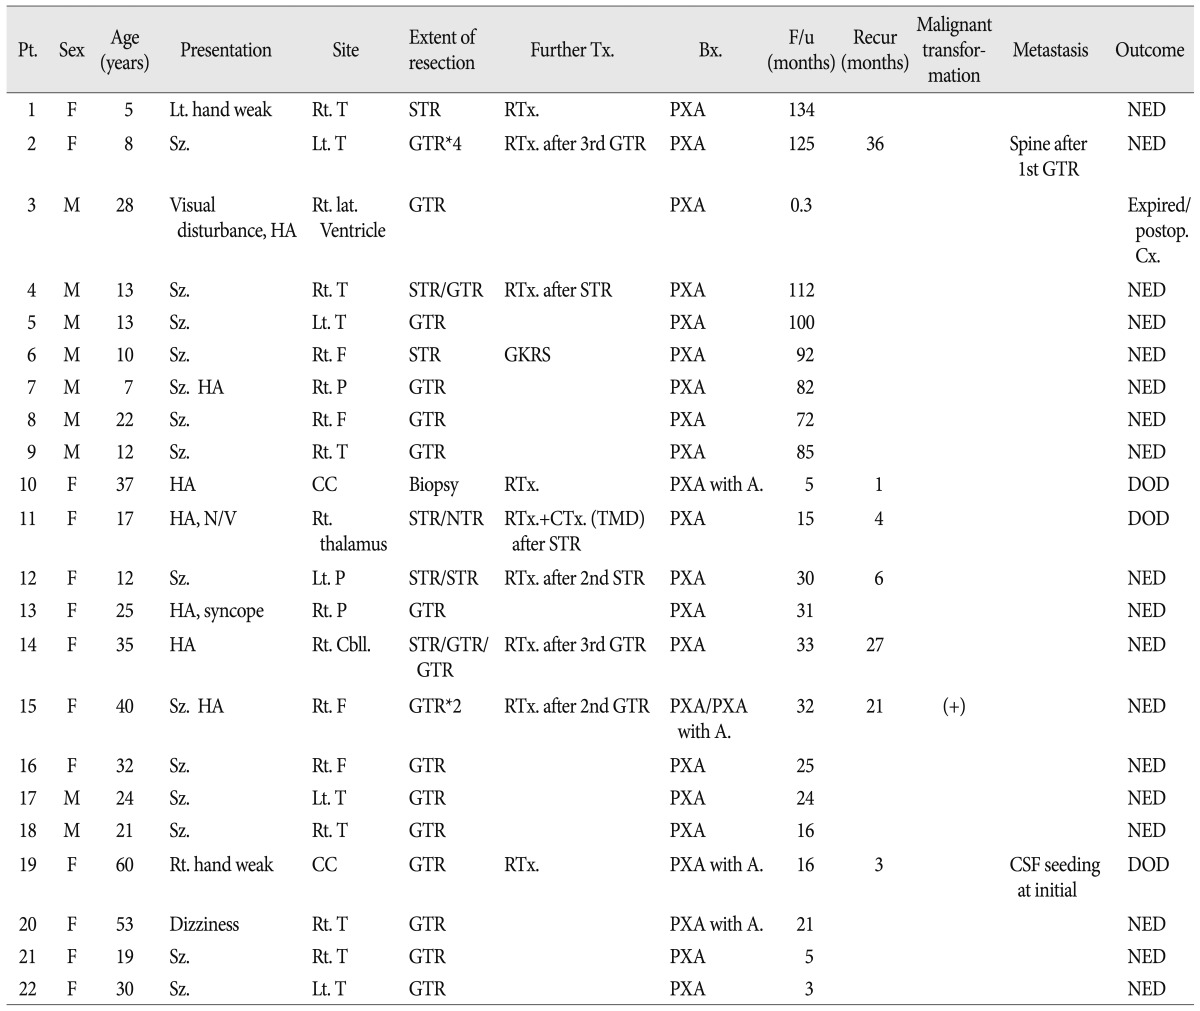 Prognostic Factors and Therapeutic Outcomes in 22 Patients with